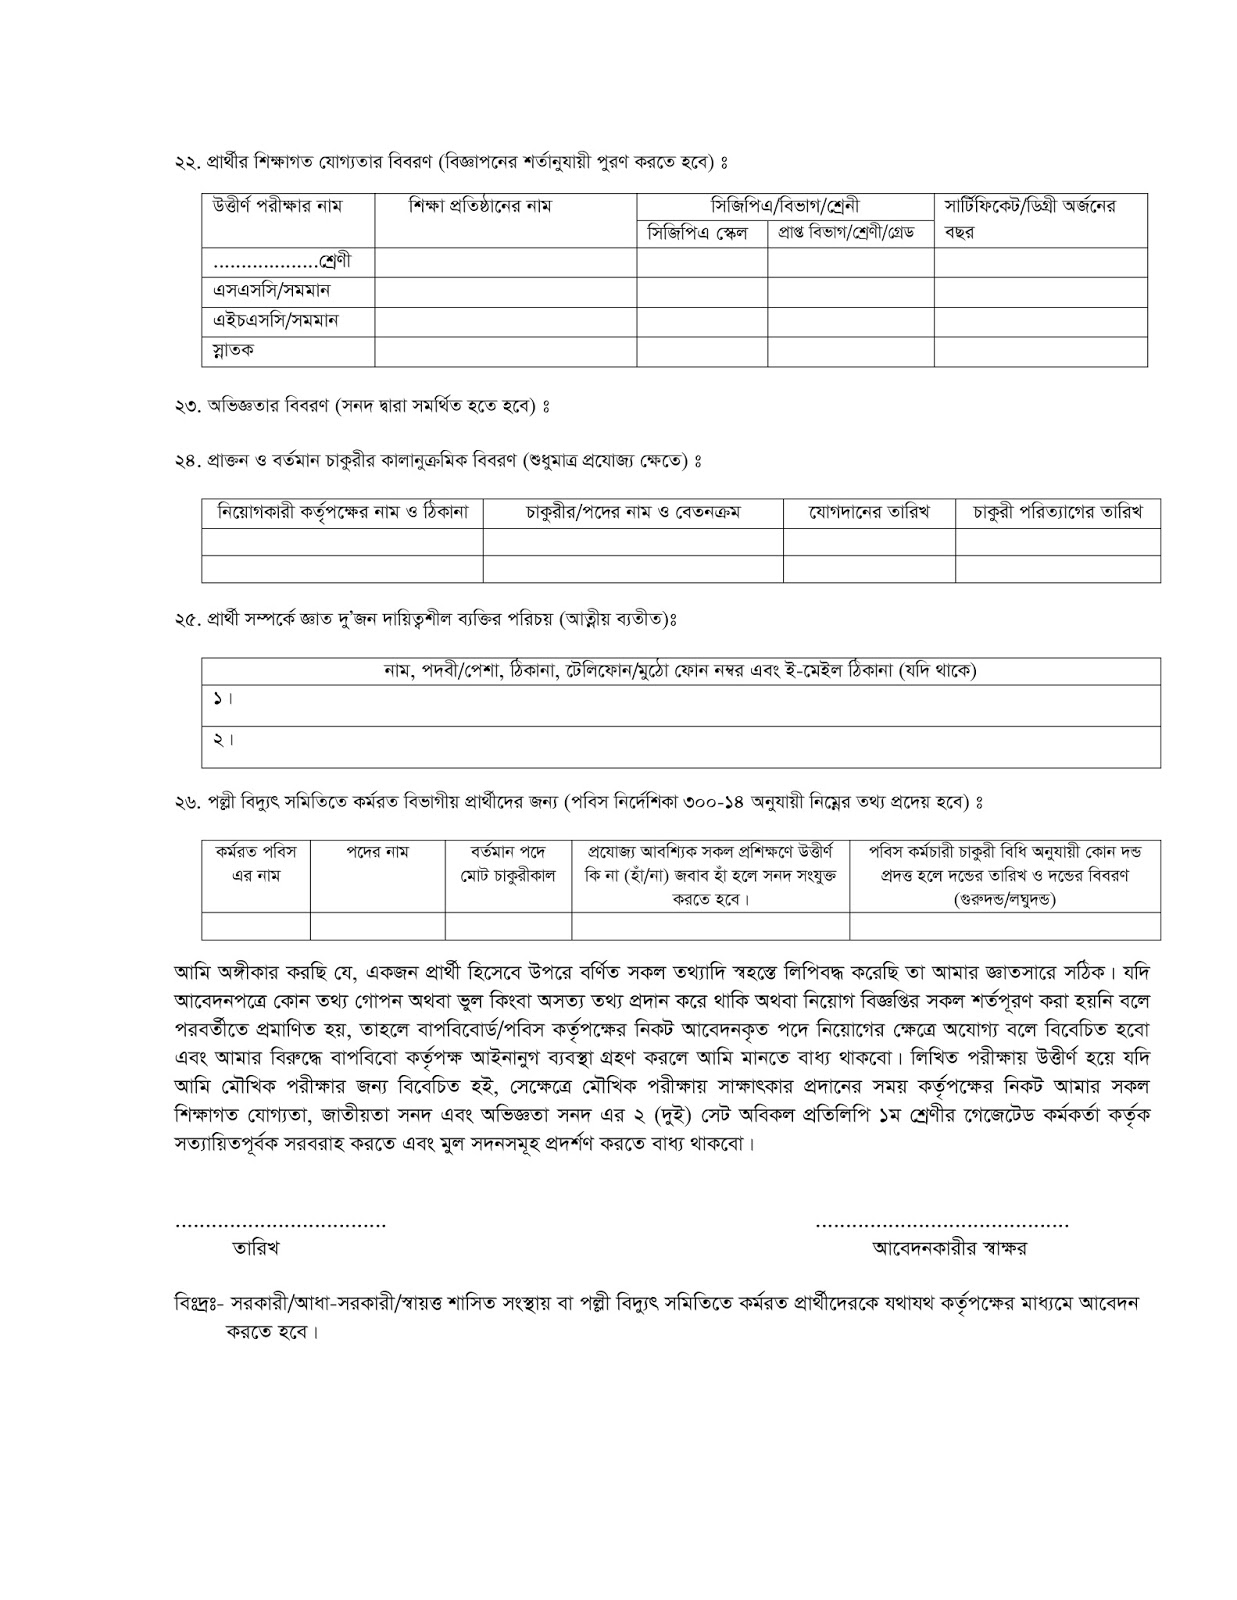 Kushtia Palli Bidyut Samity Job Driver Application form